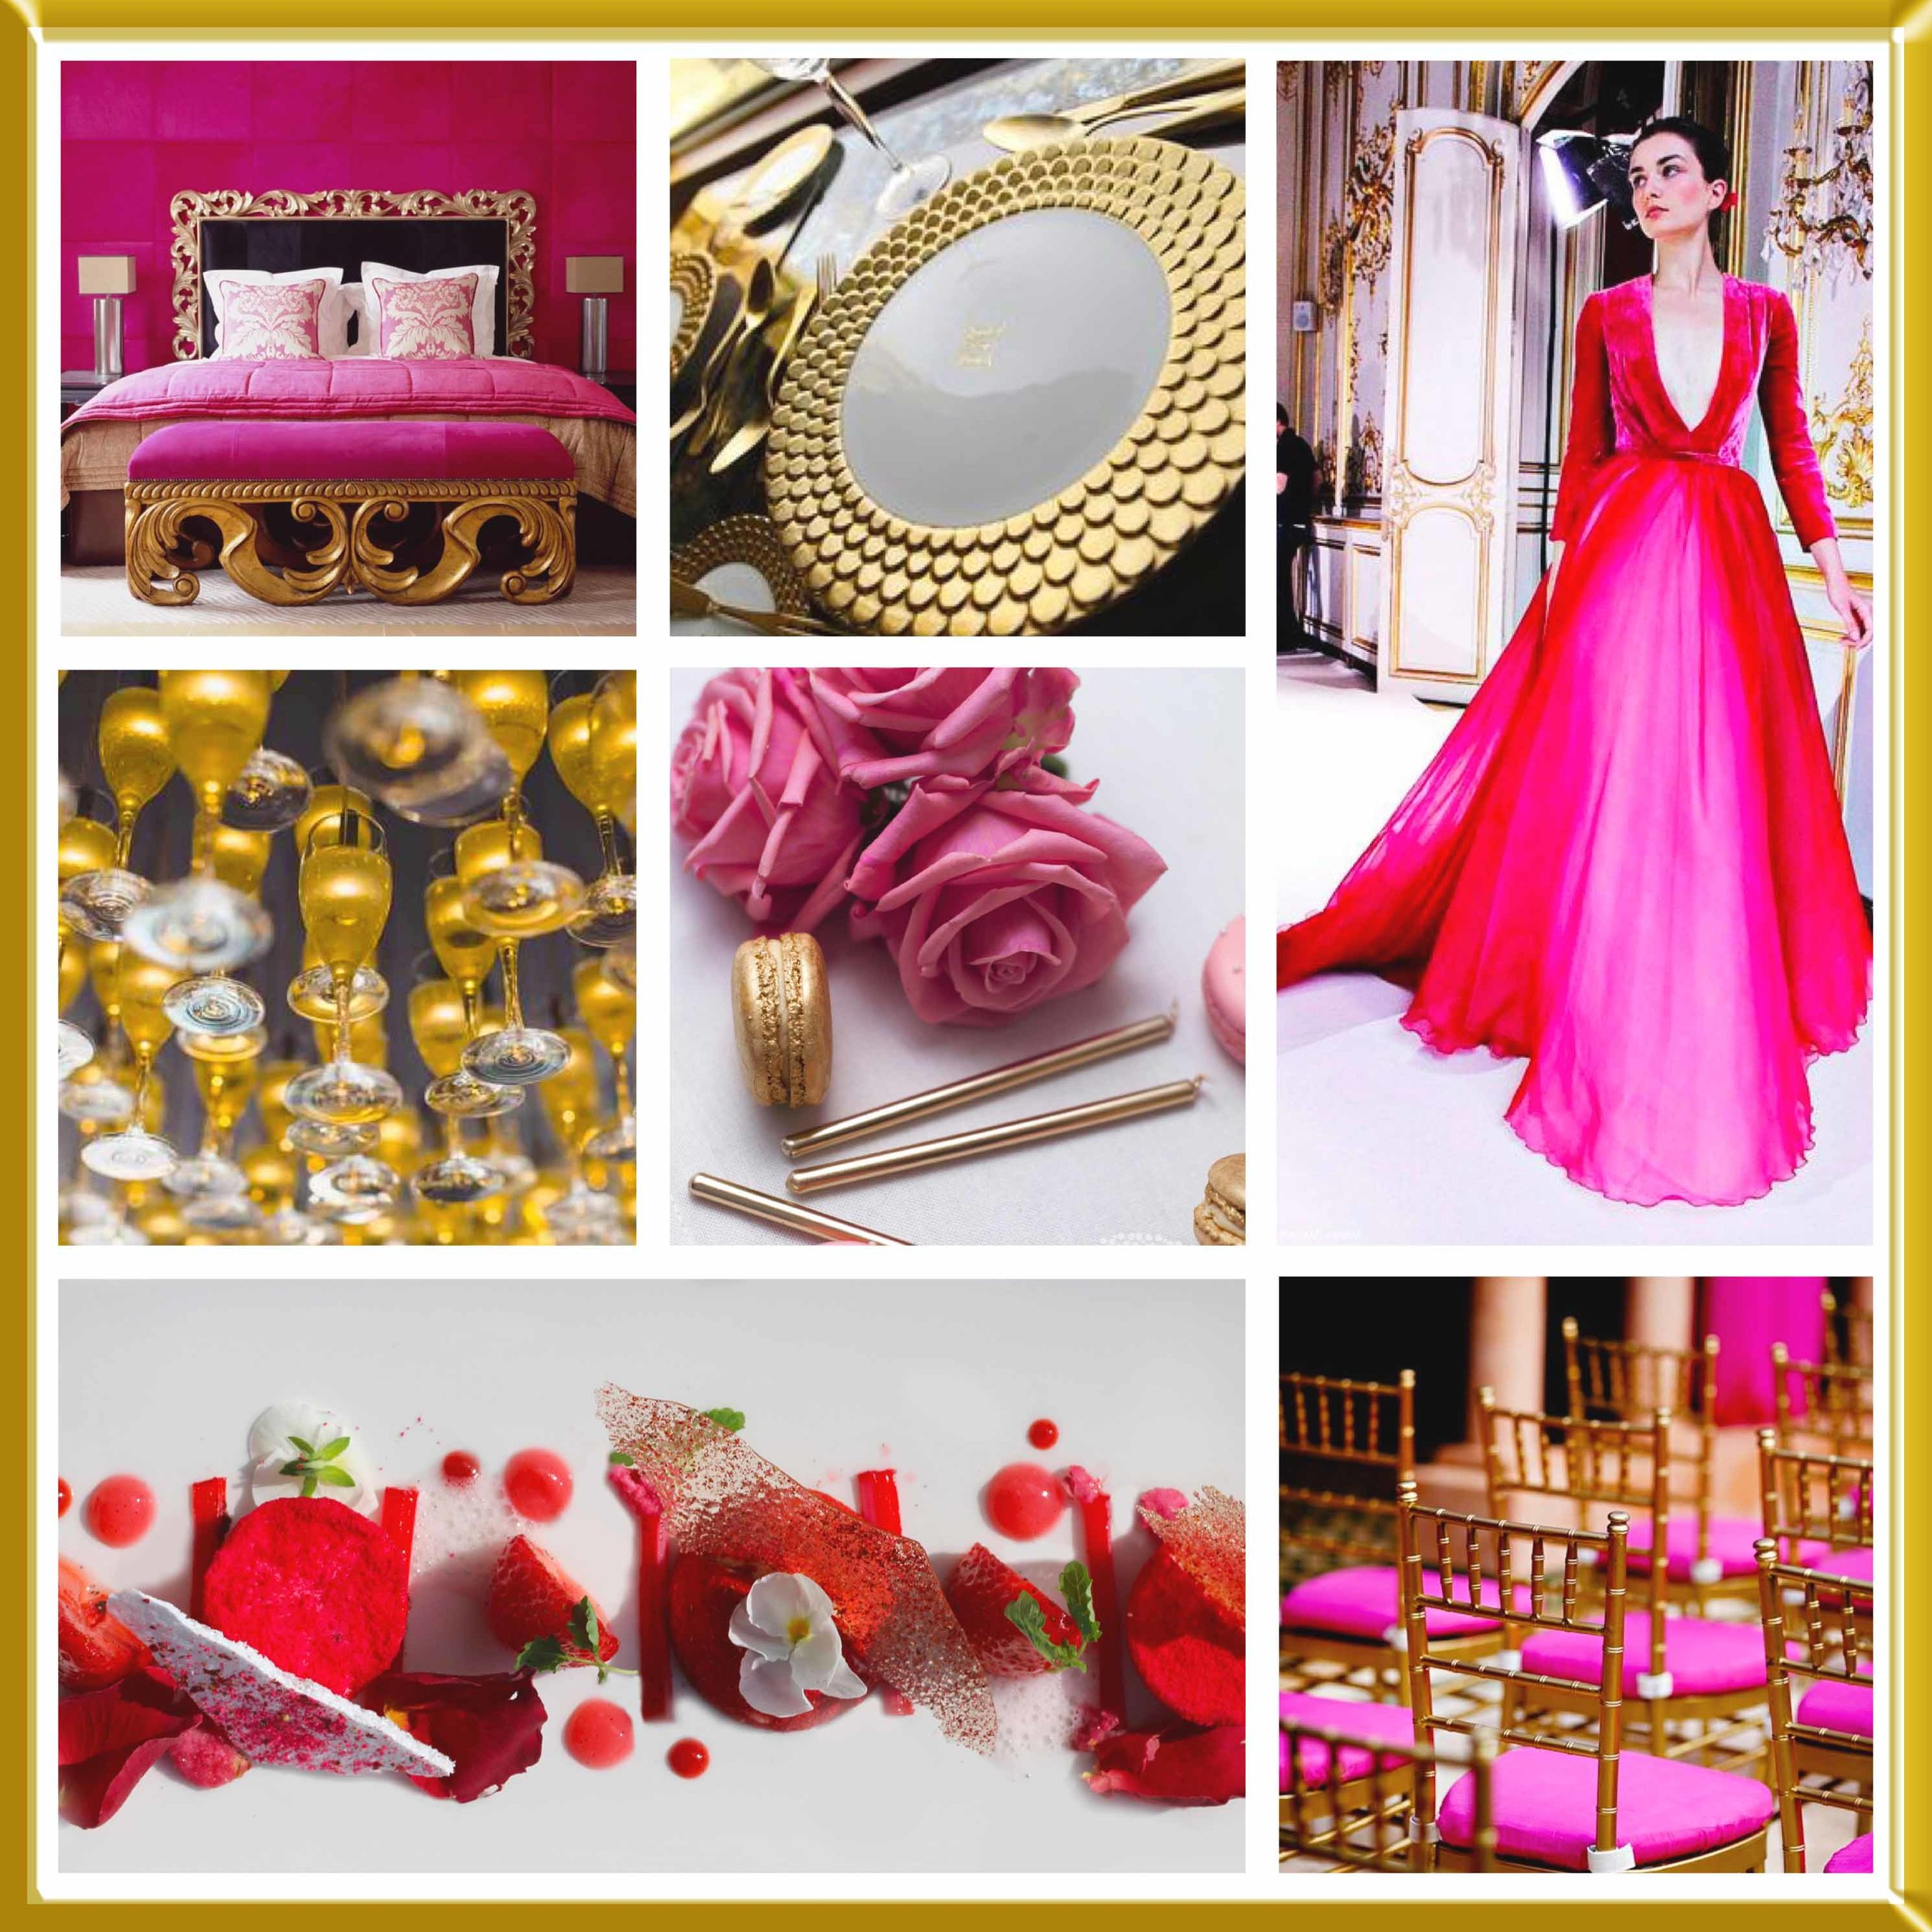 Pink and Gold wedding inspirational board.